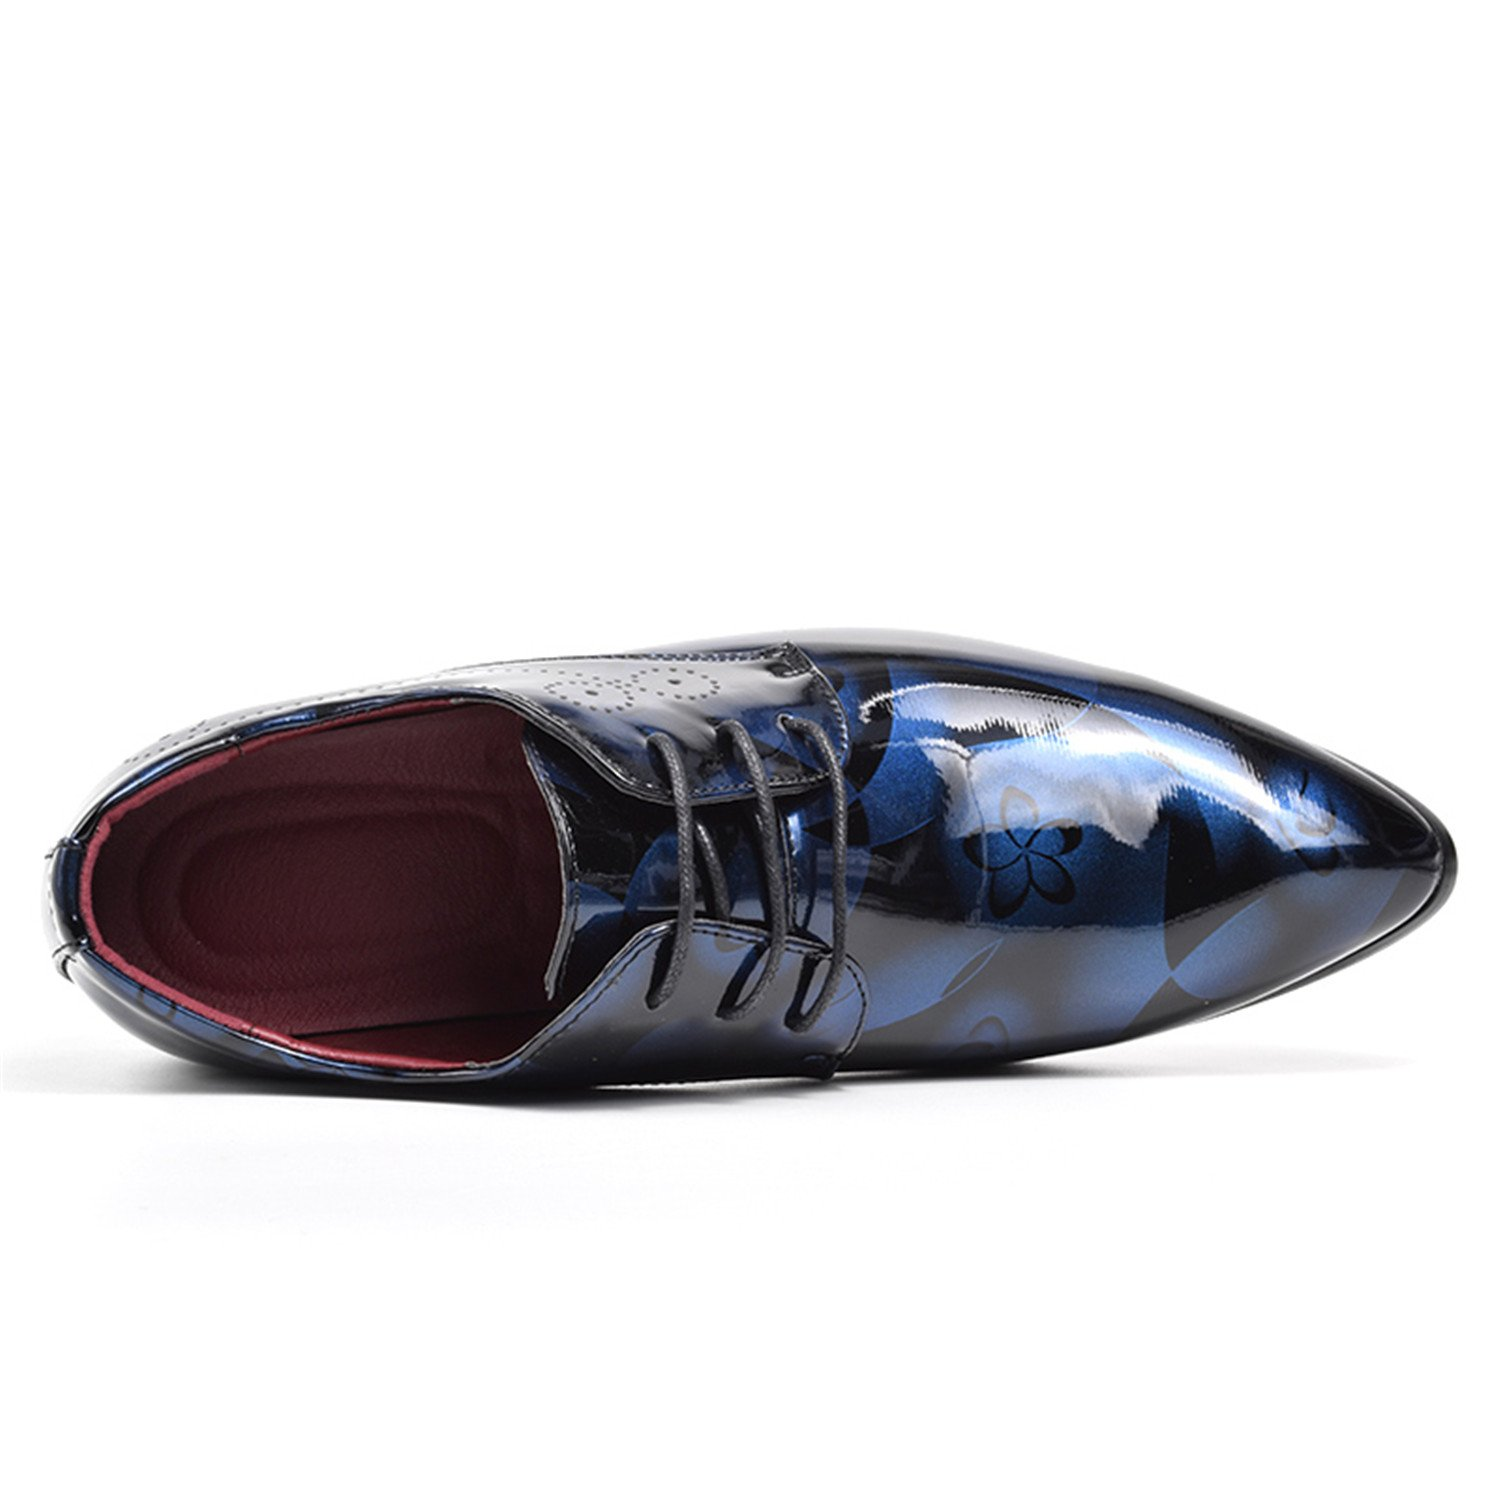 Men's/Women's Oxford Shoes for Men Dress Shoes Shoes Shoes Men Formal Shoes Pointed Toe Business Wedding Plus Size 49 50 RME-308 Complete specification range High quality and economy Various HV5766 8319d0